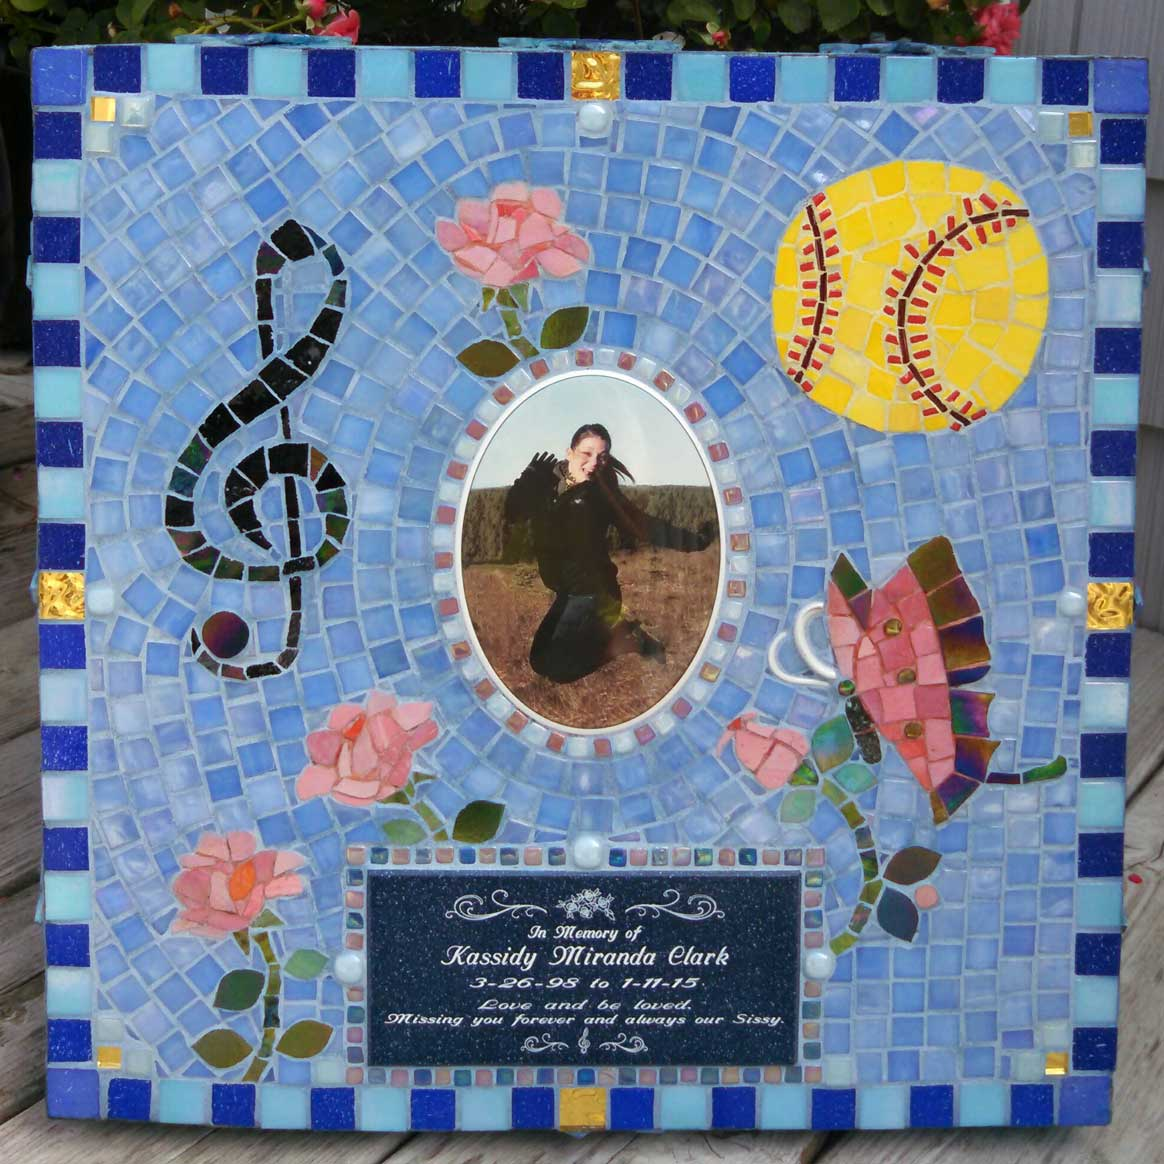 Mosaic Memorial Garden Art Stone of Kassidy's Favorite Things by Water's End Studio Artist Linda Solby